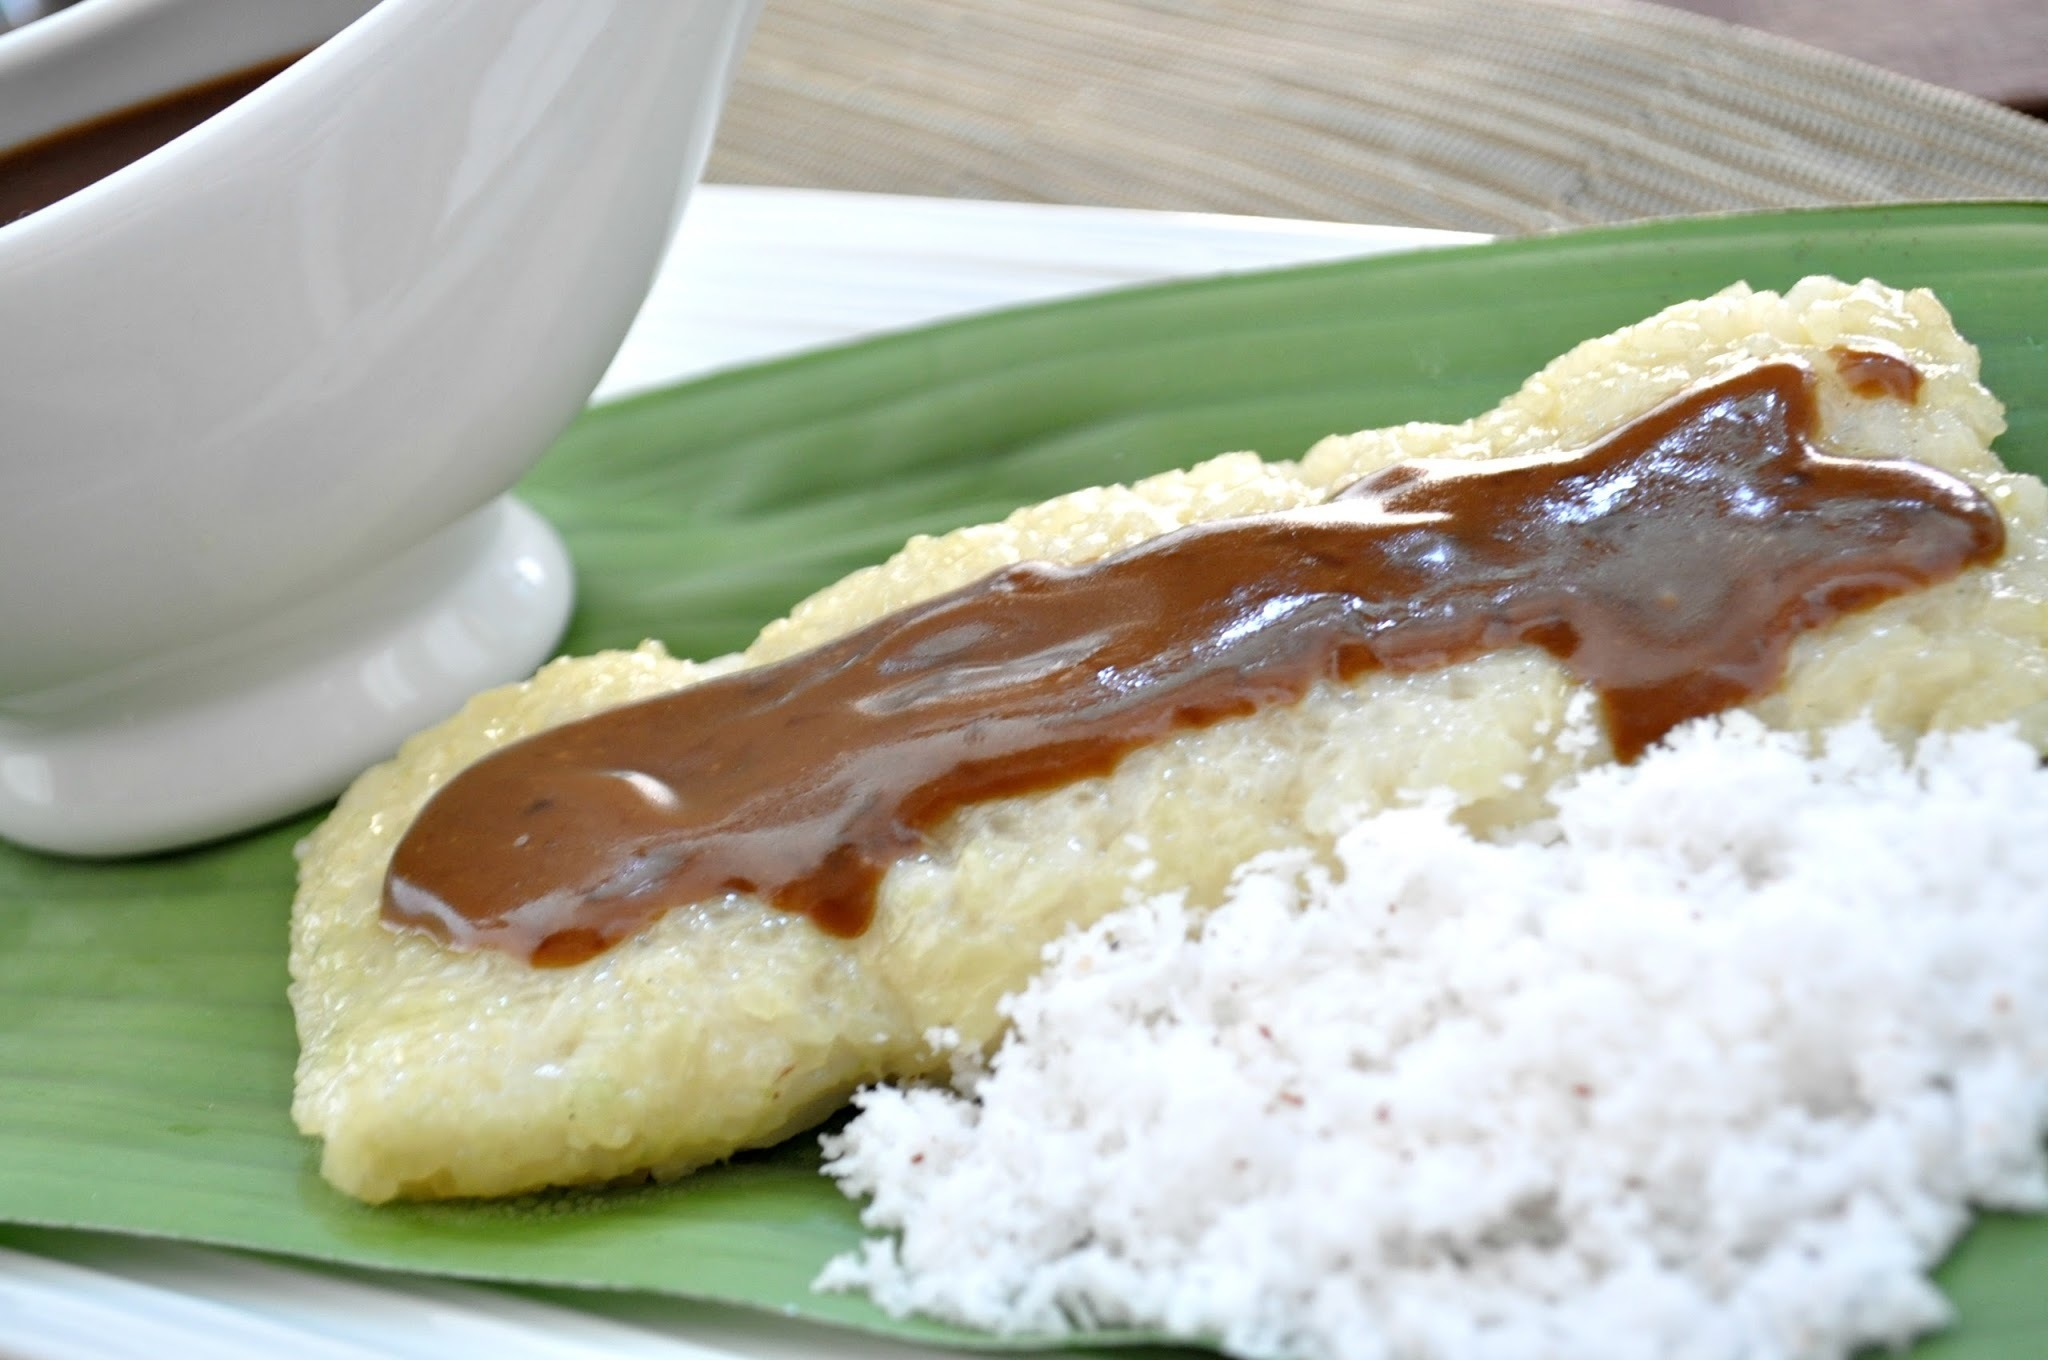 Suman sa Lihiya with Latik (Wrapped Rice Cake with Coco-Butter Syrup)